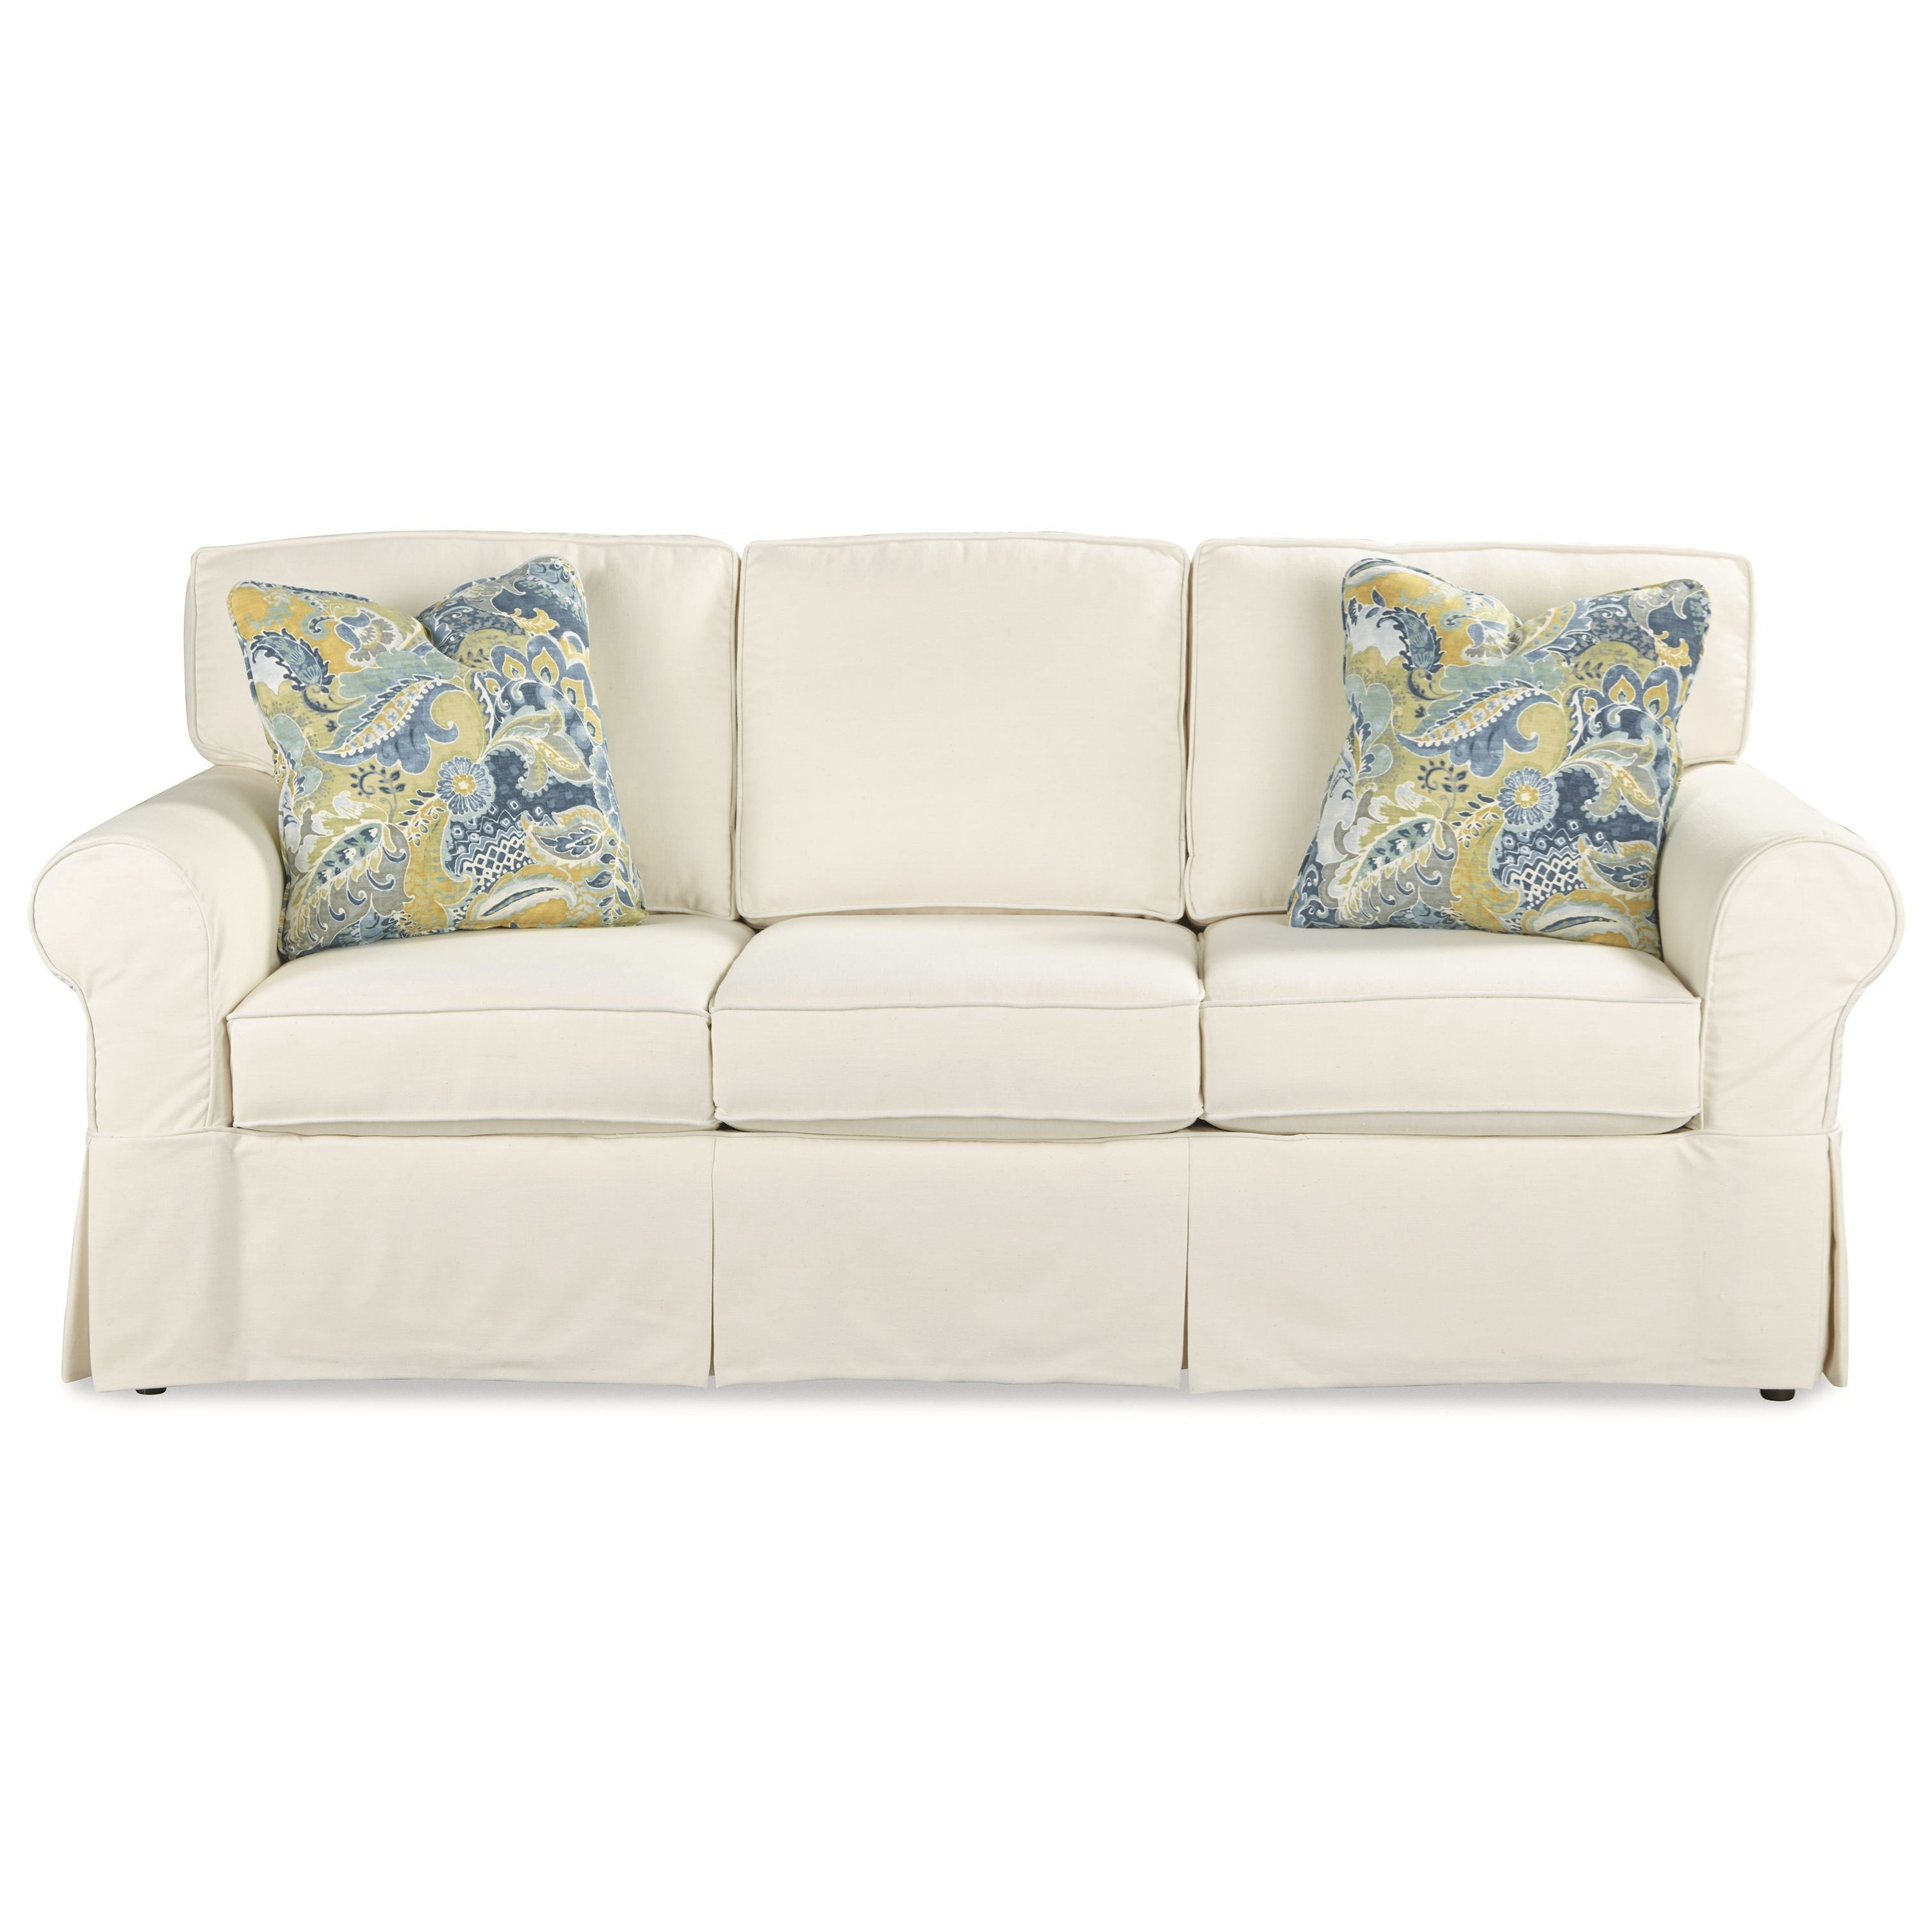 queen sofa bed no arms designs for lobby casual slipcover sleeper with innerspring